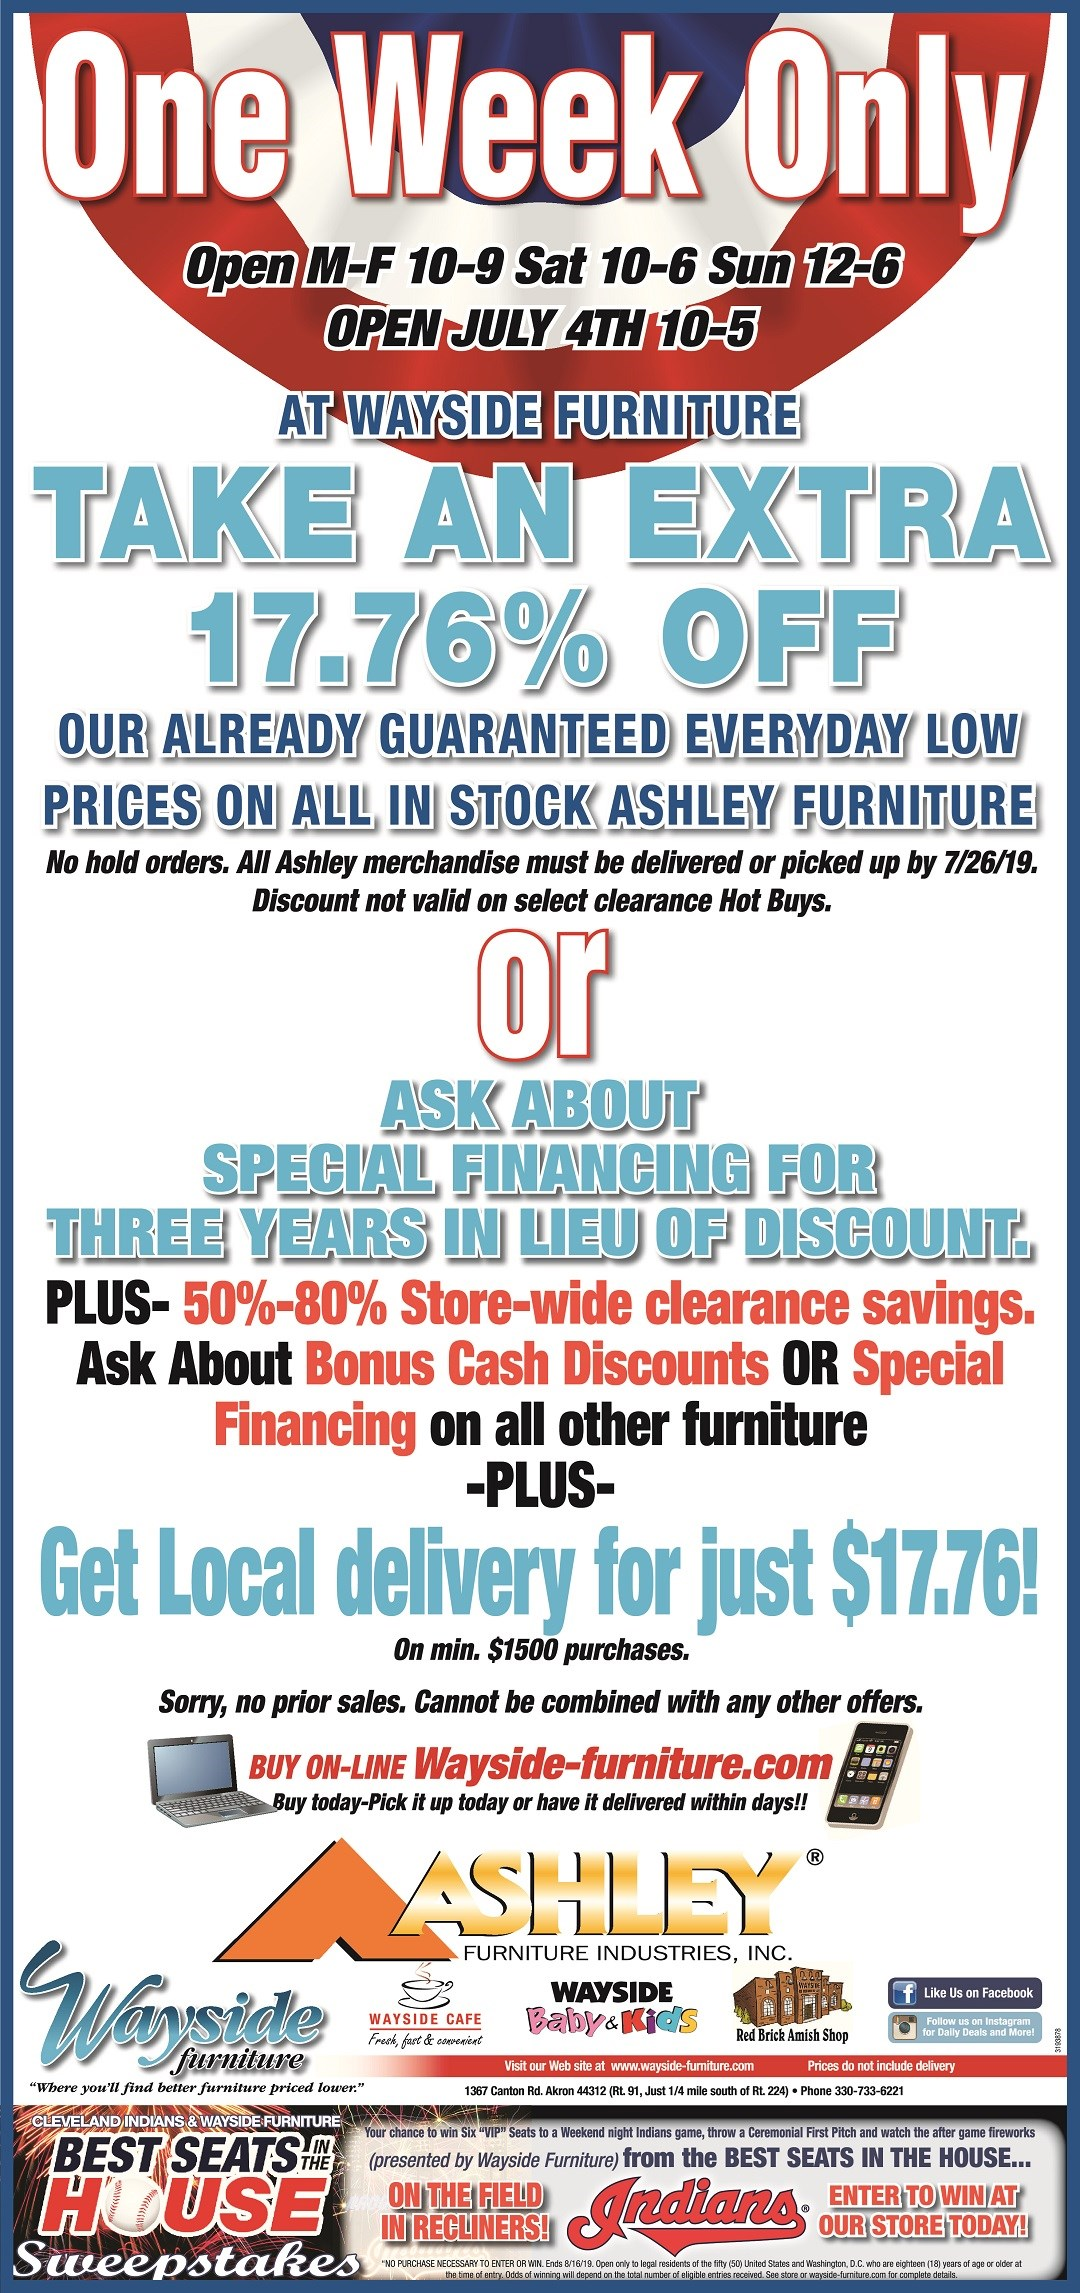 Charmant 17.76% Off All In Stock Ashley Furniture. Local Delivery For $17.76 With  Min $1500